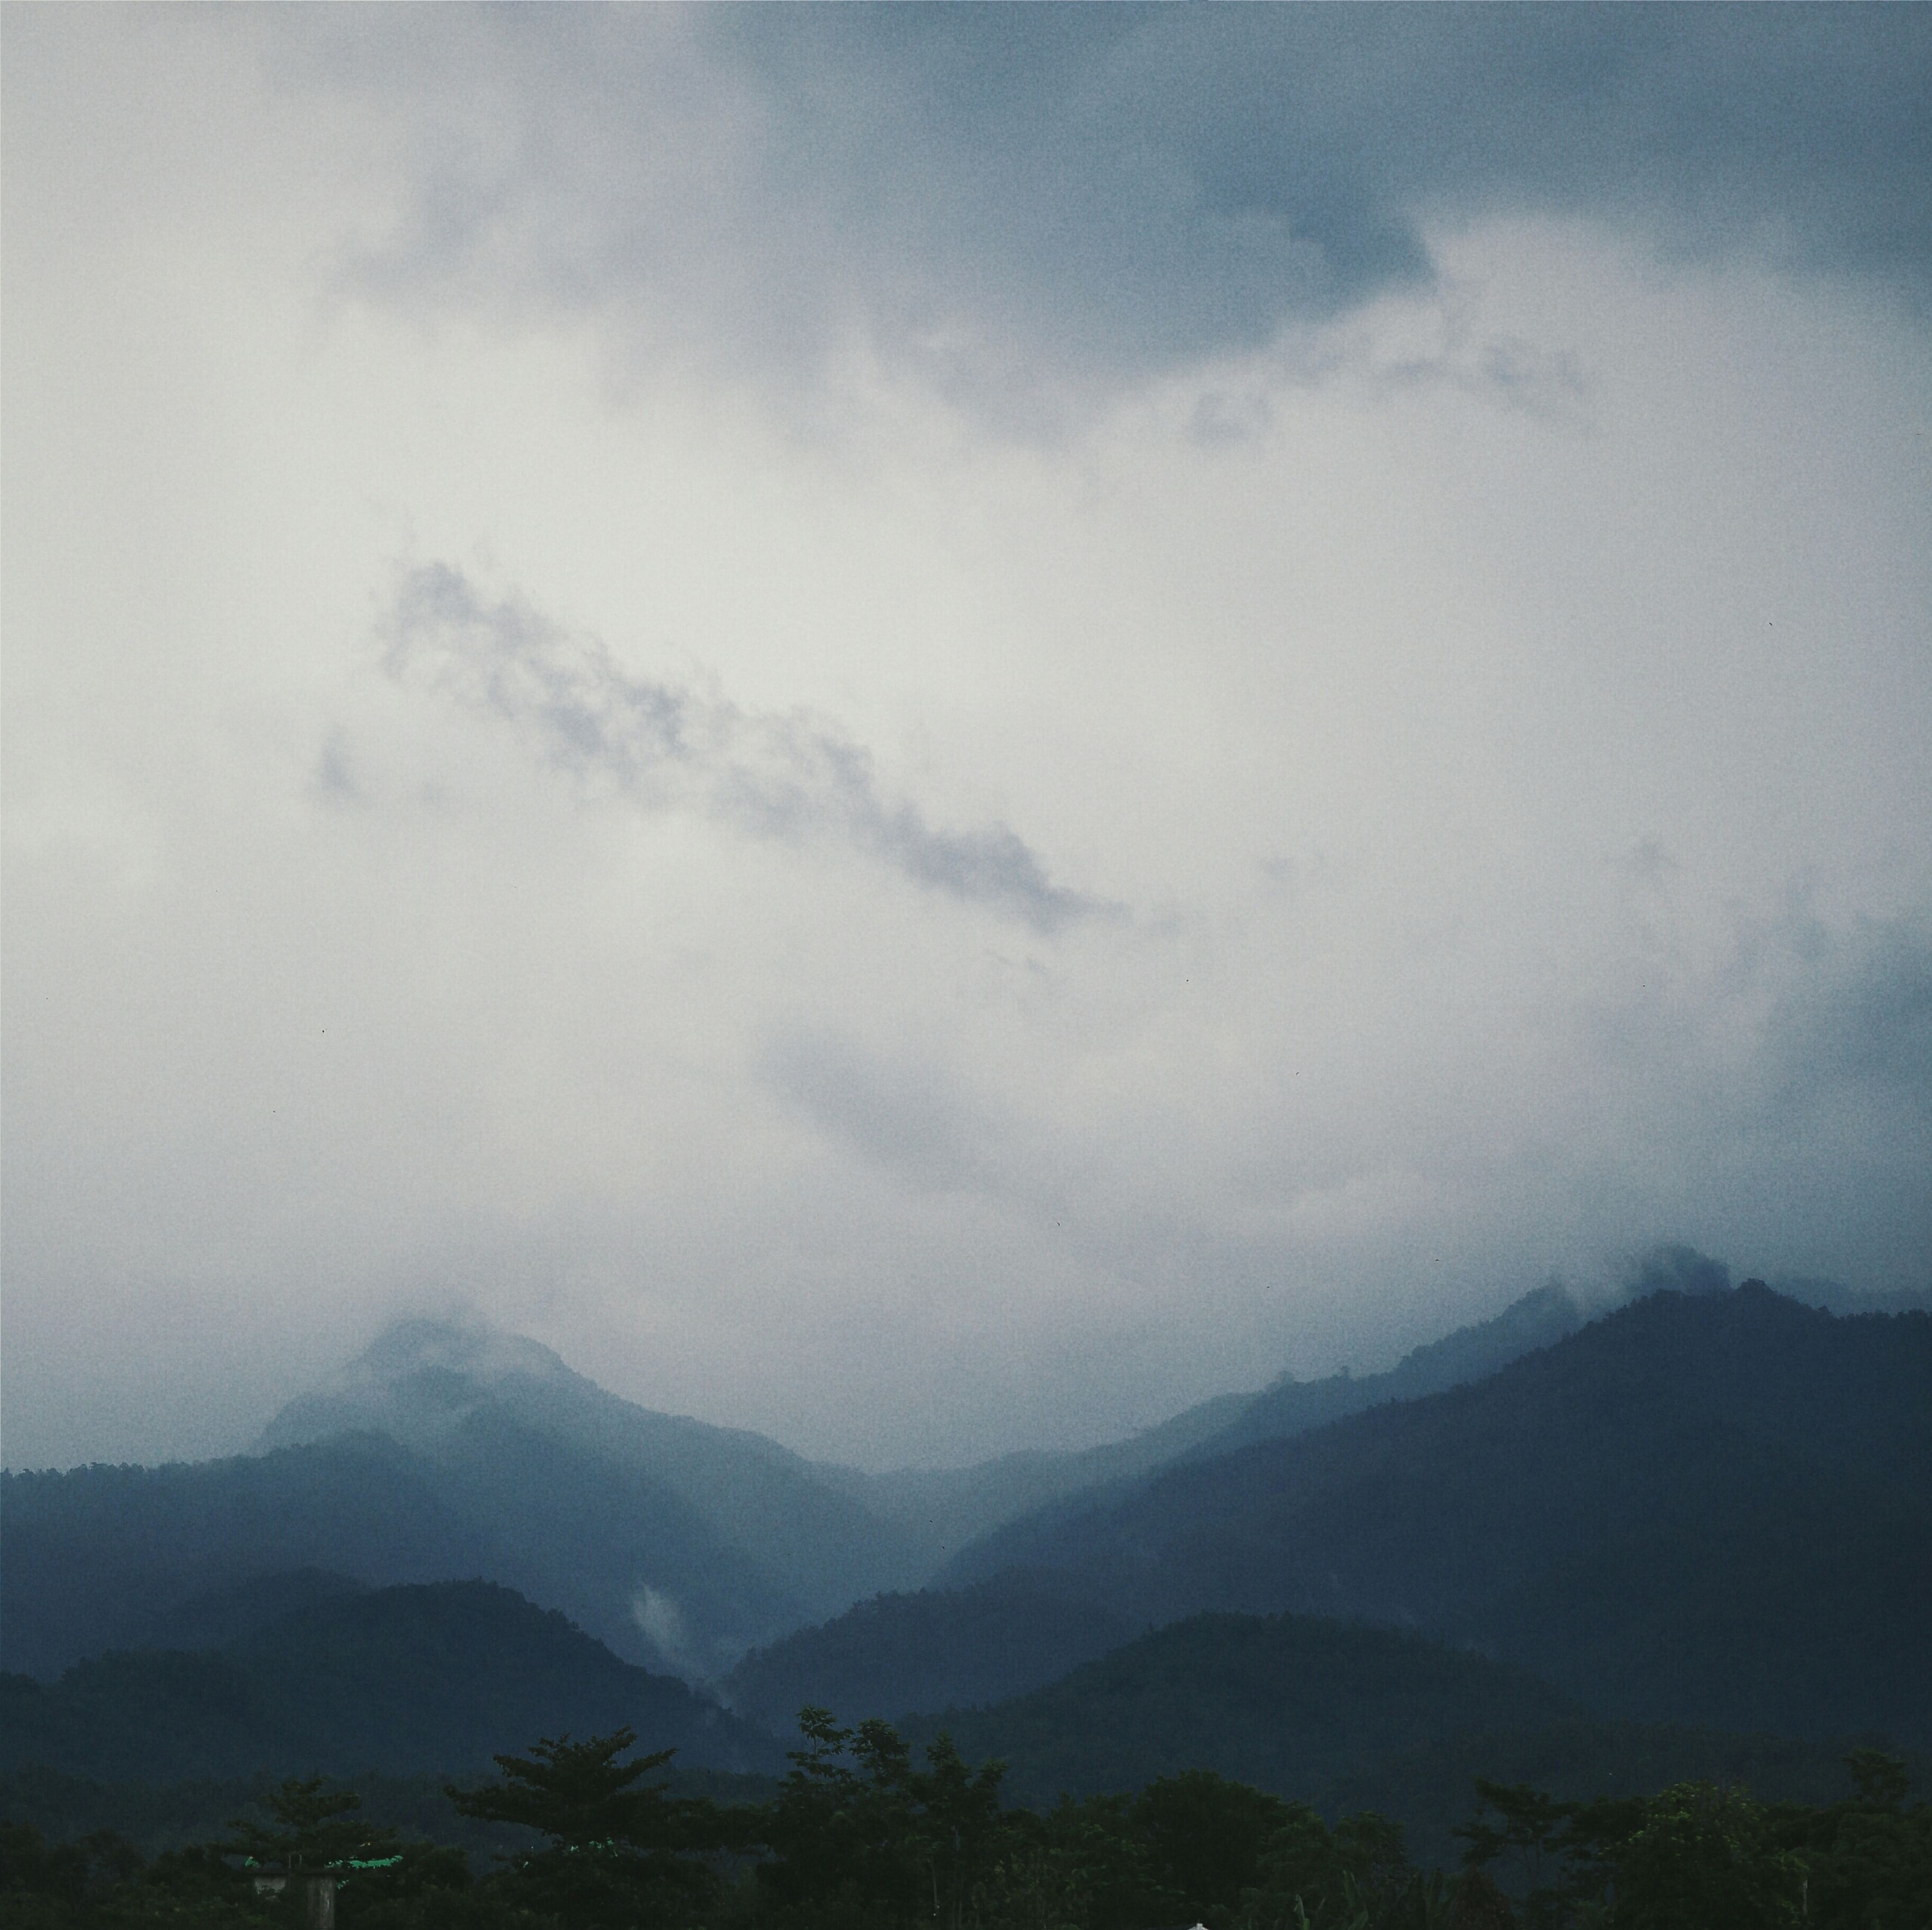 mountain, mountain range, scenics, tranquil scene, tranquility, beauty in nature, sky, landscape, nature, cloud - sky, non-urban scene, idyllic, tree, fog, cloudy, cloud, weather, outdoors, remote, day